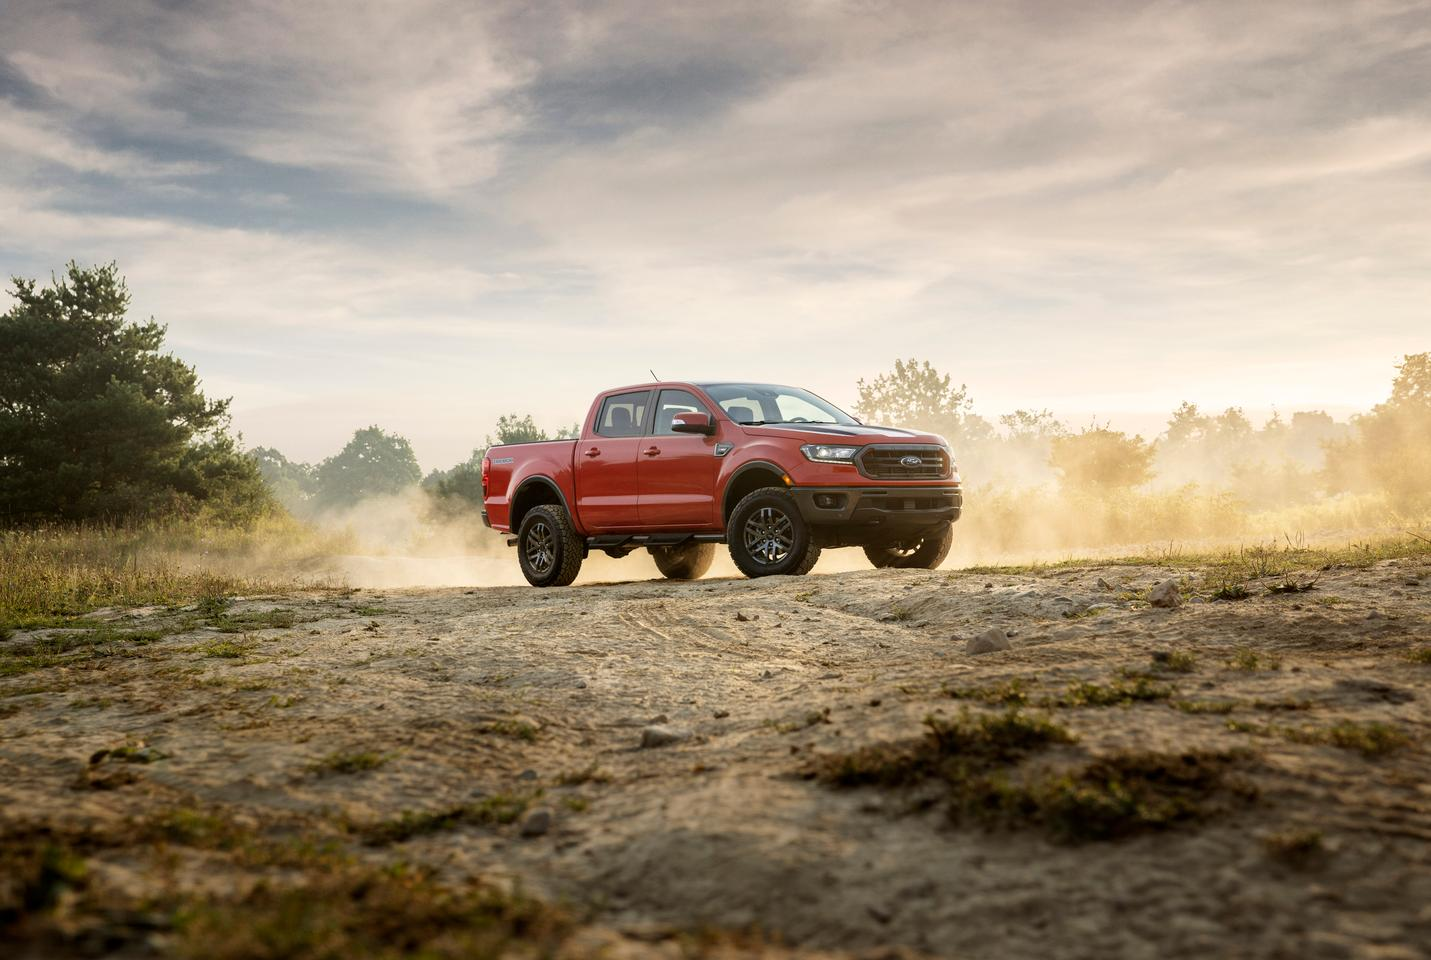 The Tremor package will be available on 4x4 models of both the XLT and Lariat Ford Ranger for the 2021 model year